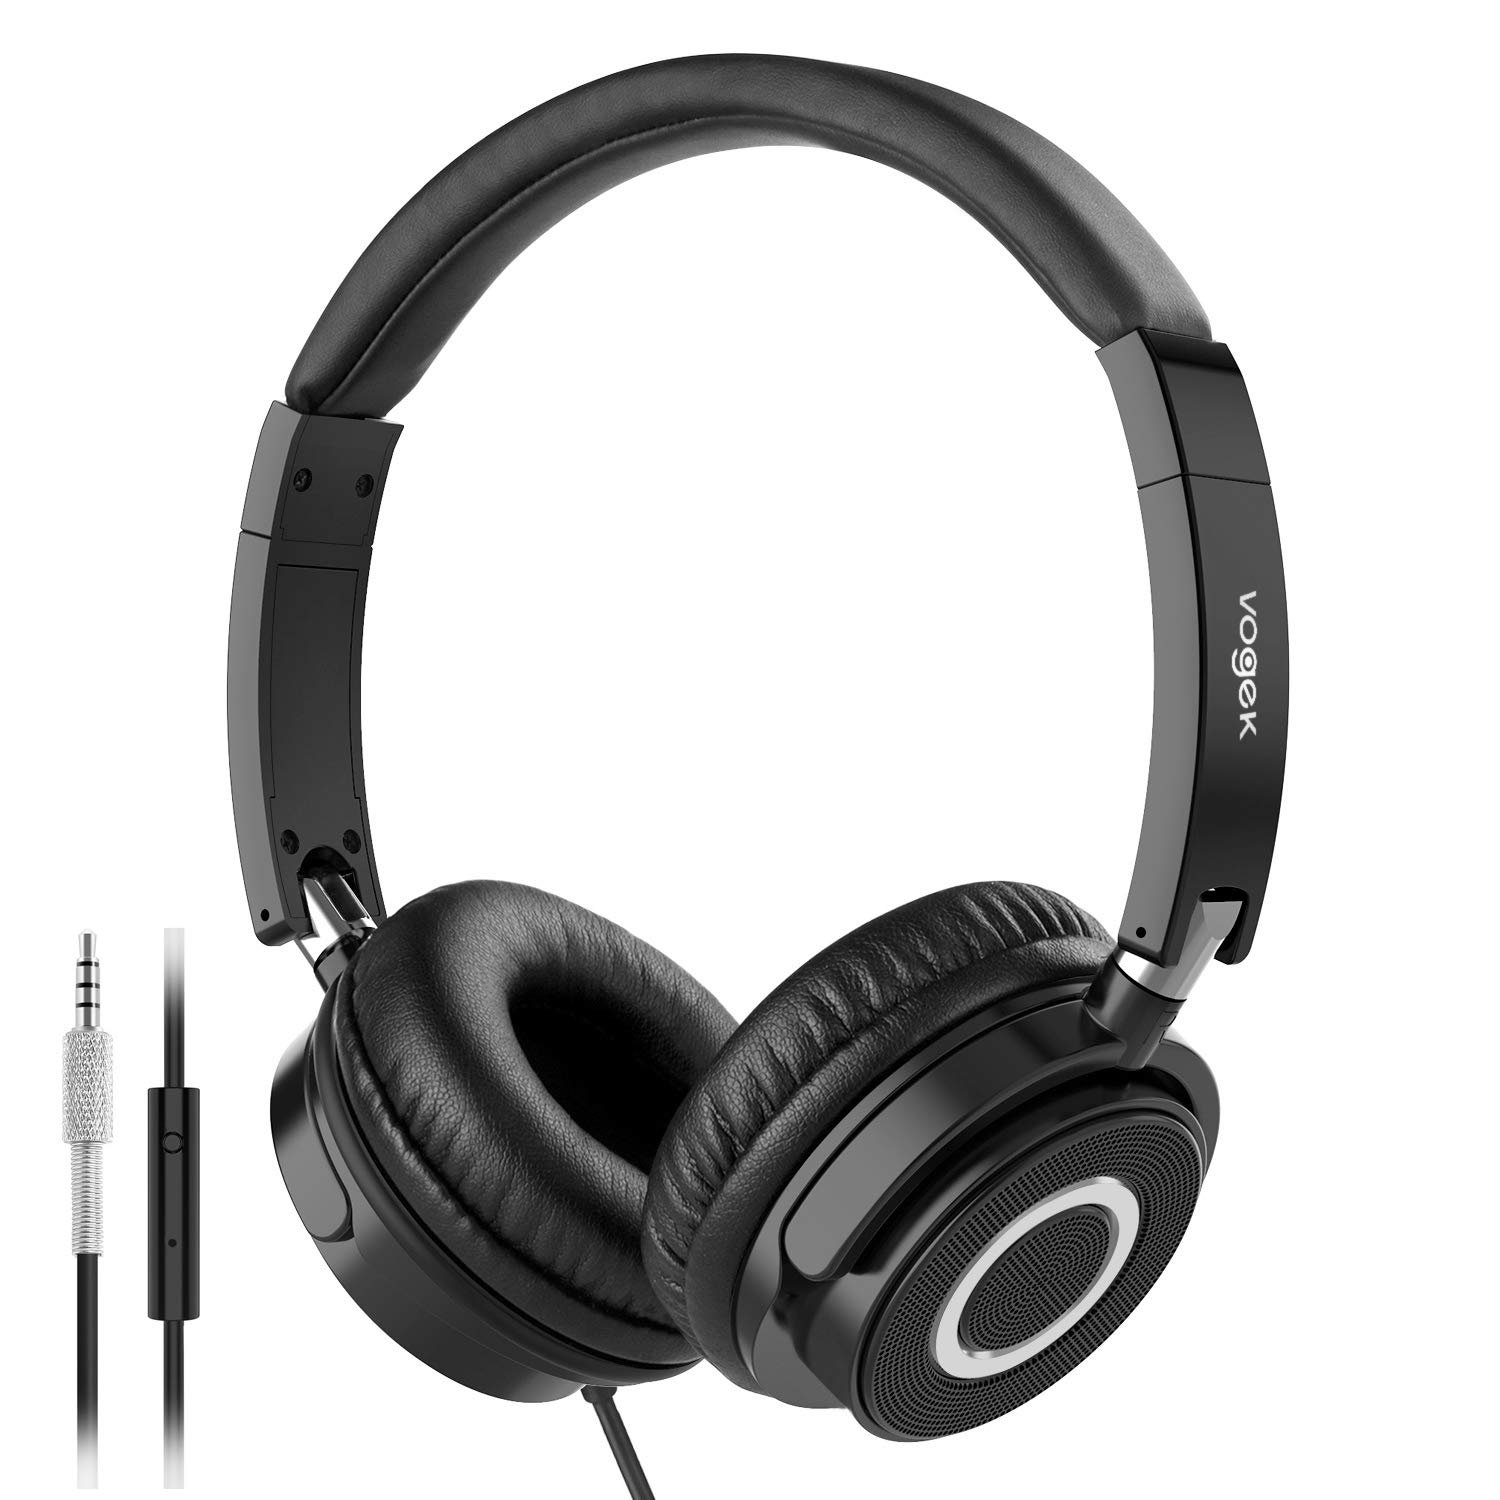 On Ear Headphones with Mic,Lightweight Portable Fold-Flat Stereo Bass Headphones with 1.5M Ta